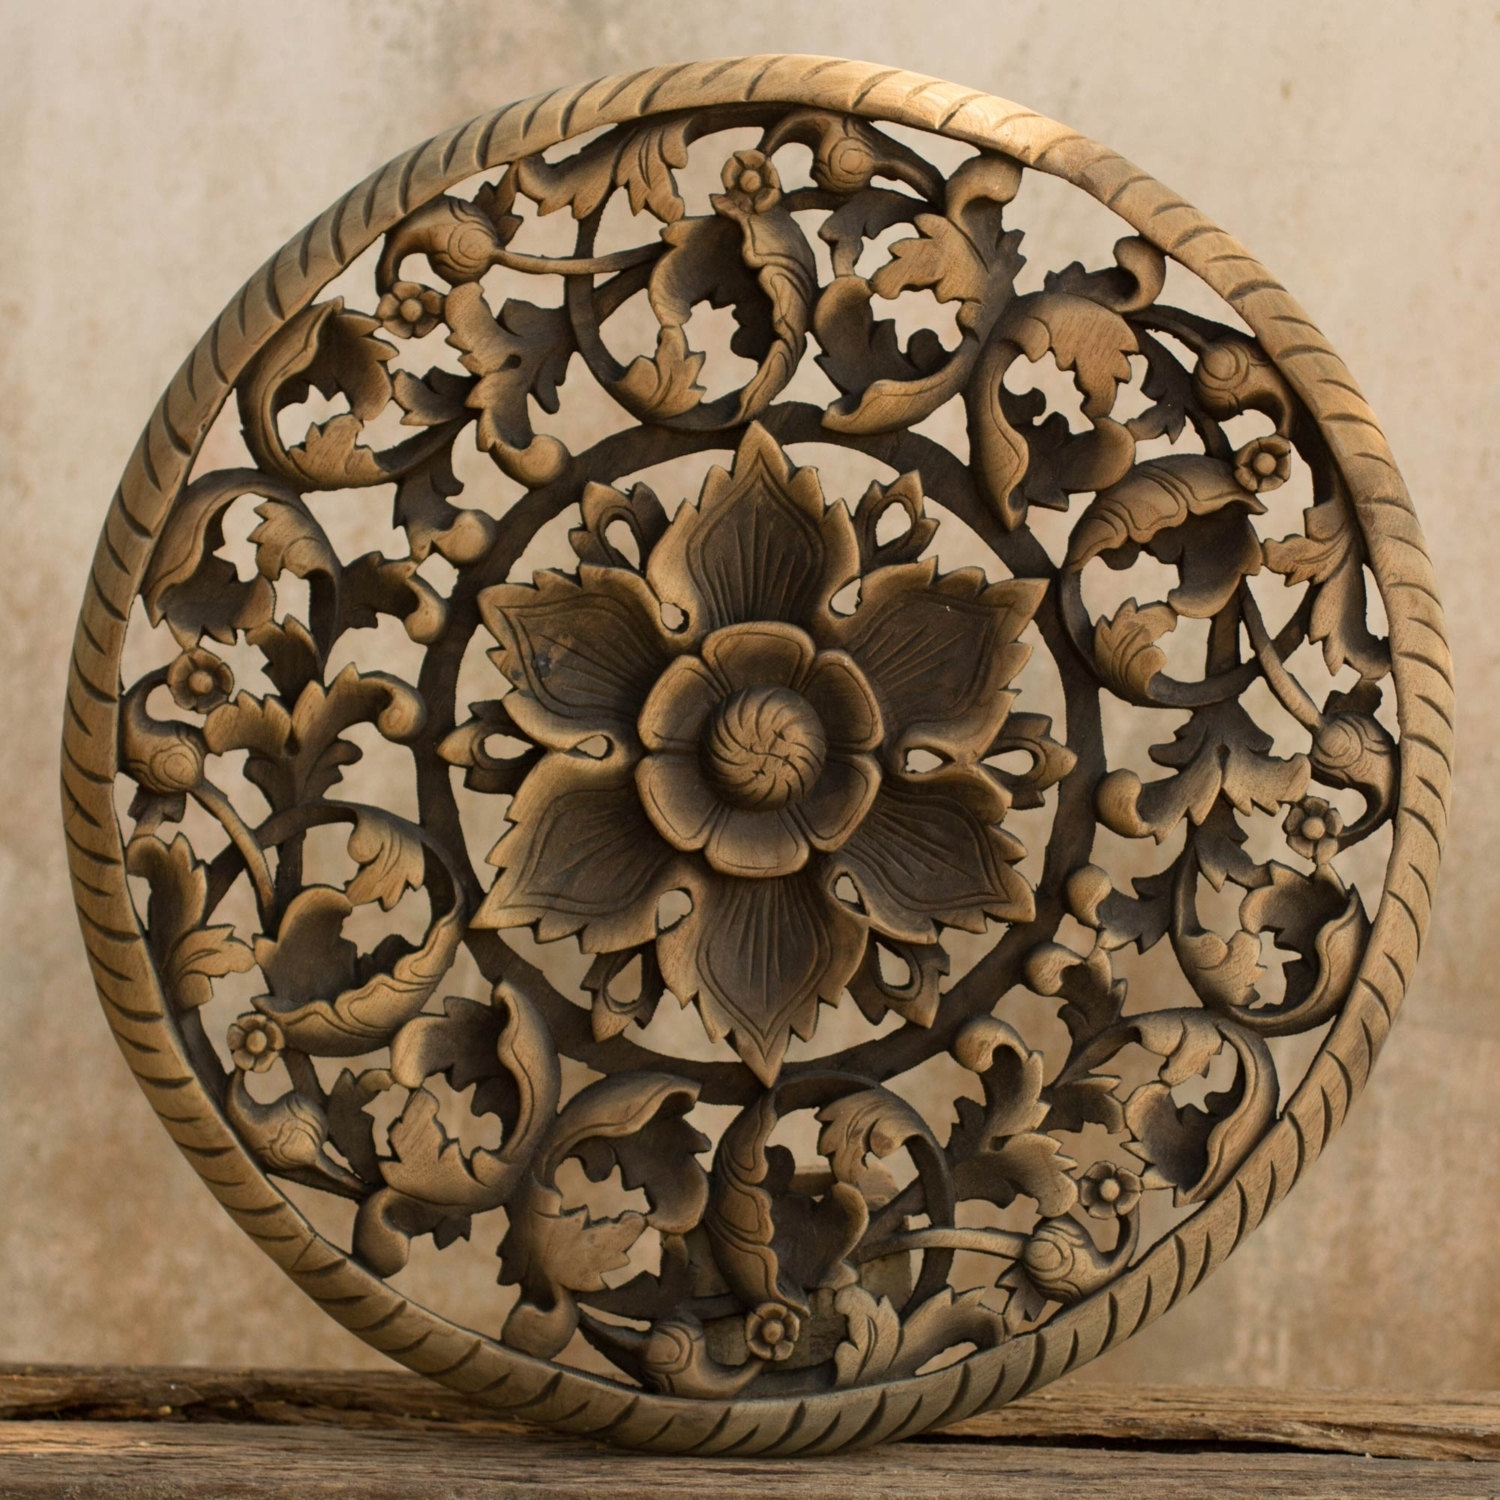 Buy Tree Dimensional Floral Wooden Wall Hanging Online With Regard To Latest Wood Carved Wall Art (View 4 of 20)